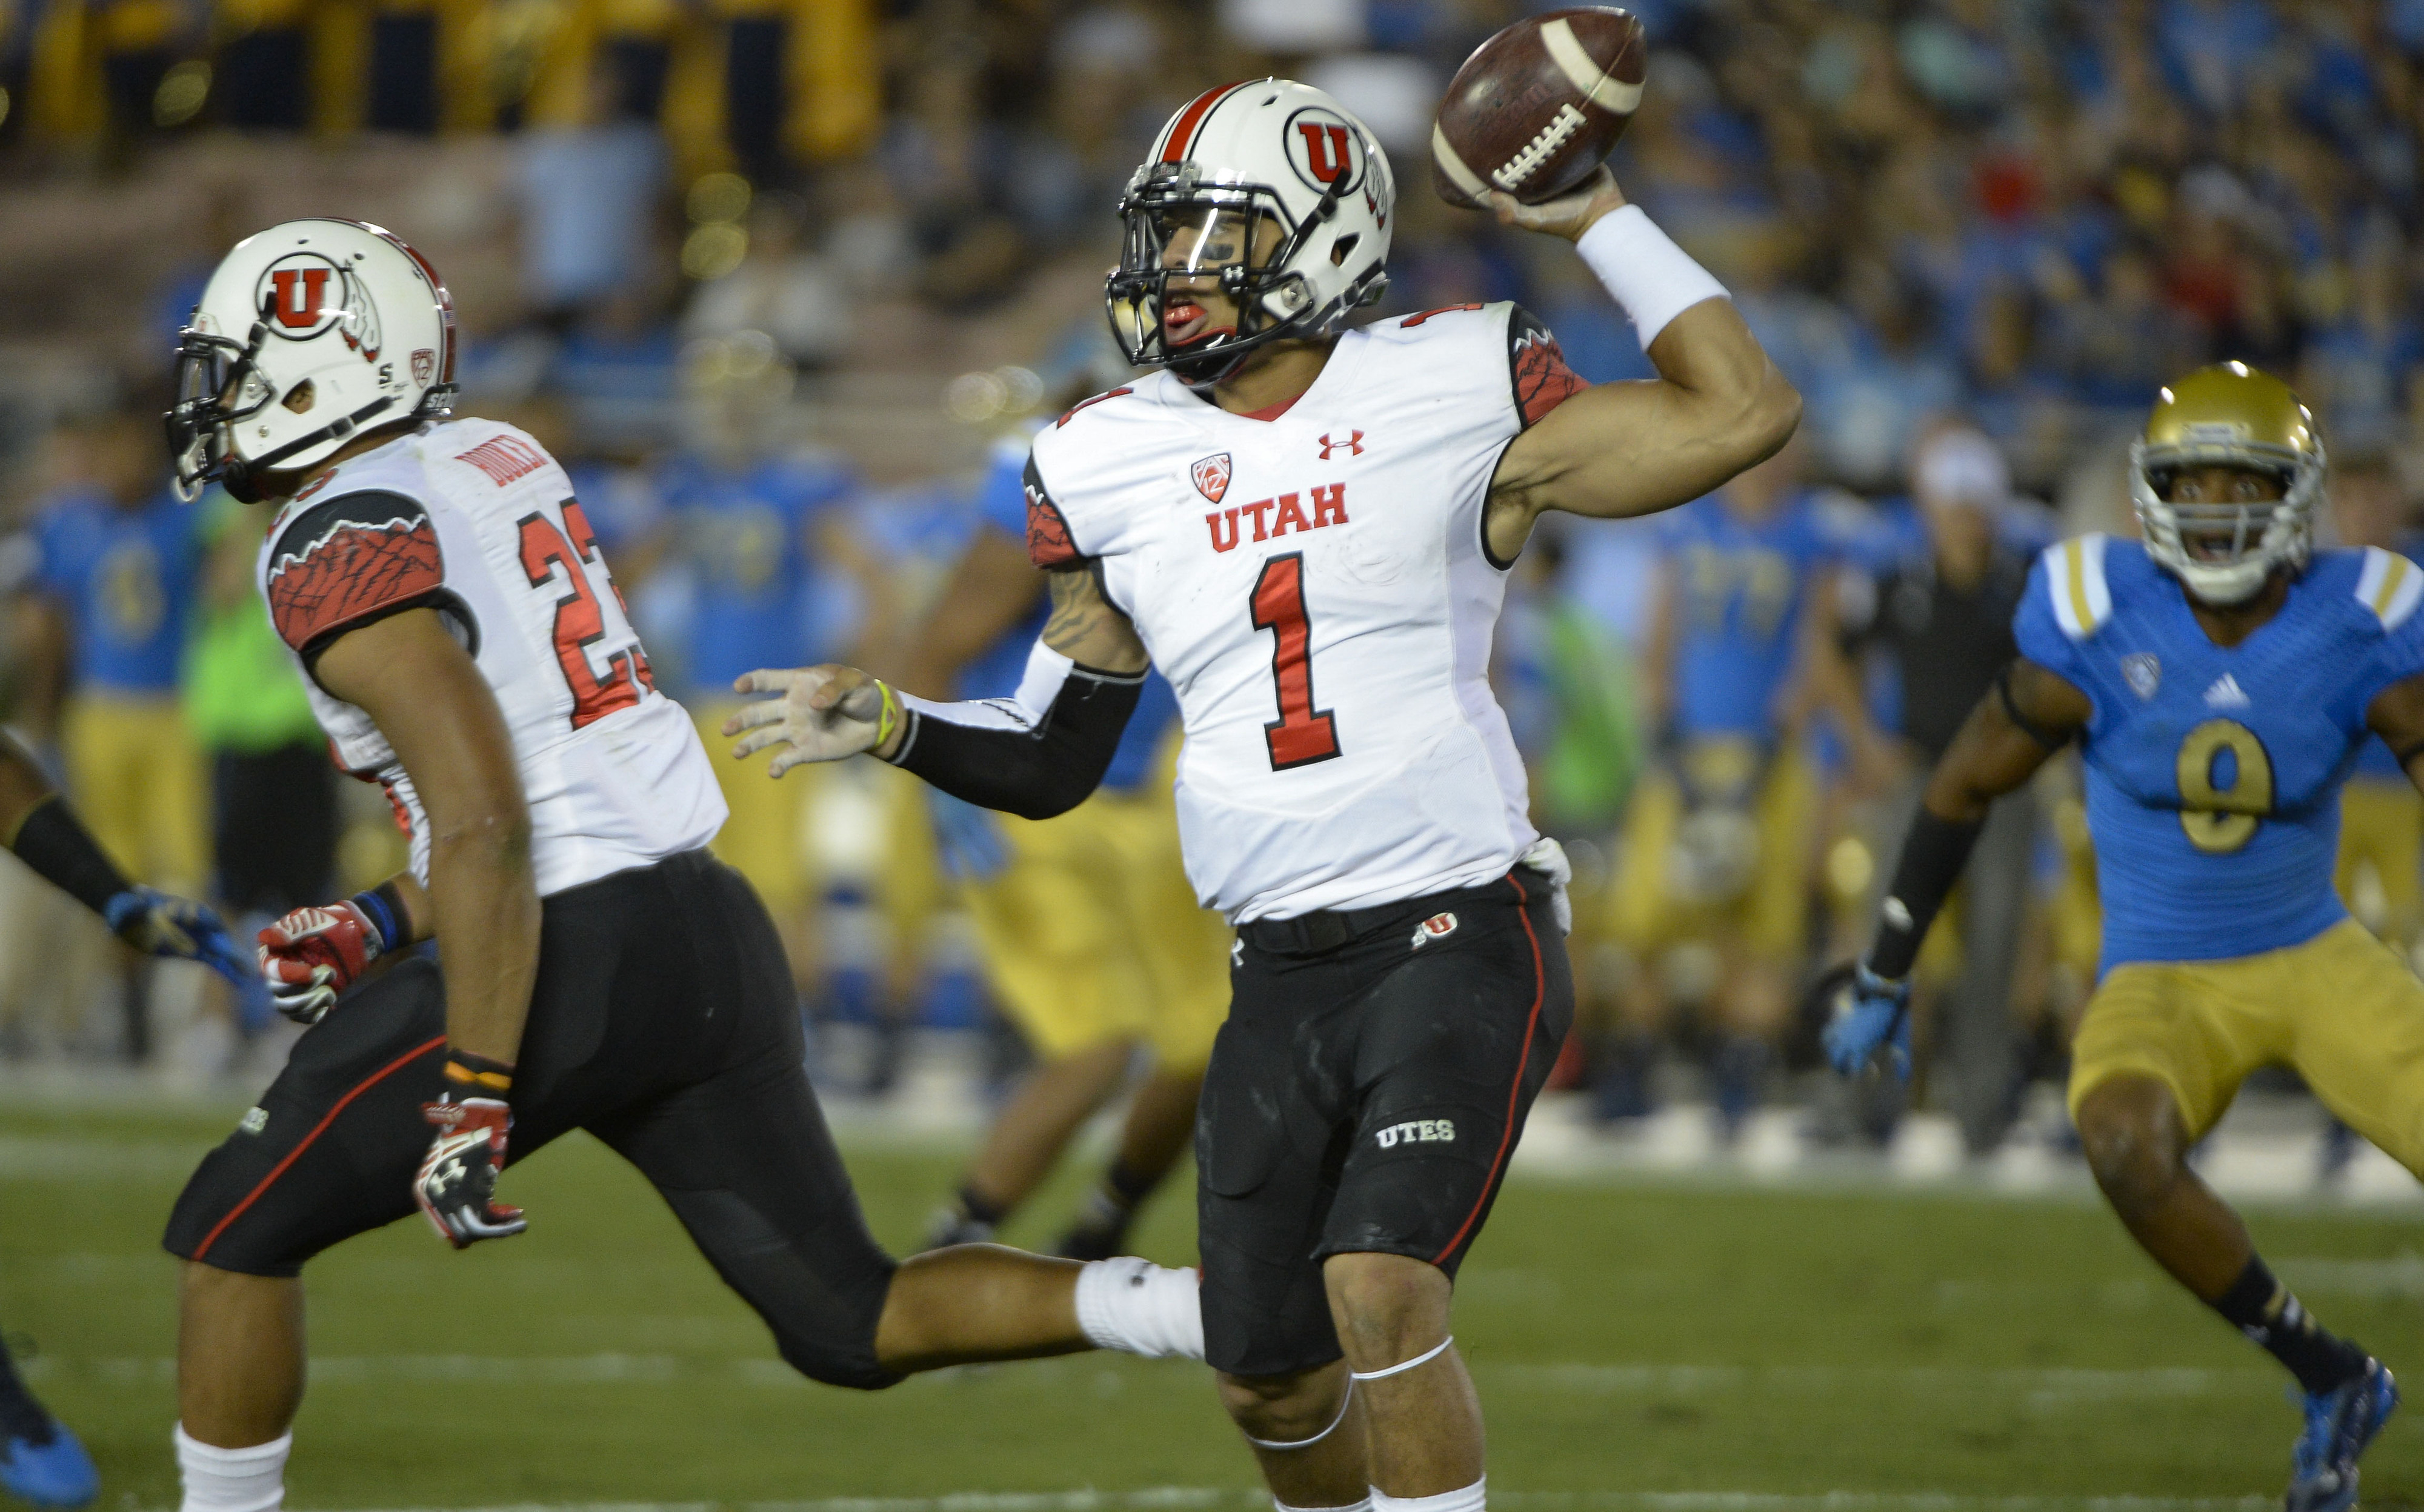 Utah quarterback Kendal Thompson is listed as the co-starter heading into the Utes' big game in Corvallis, Ore.